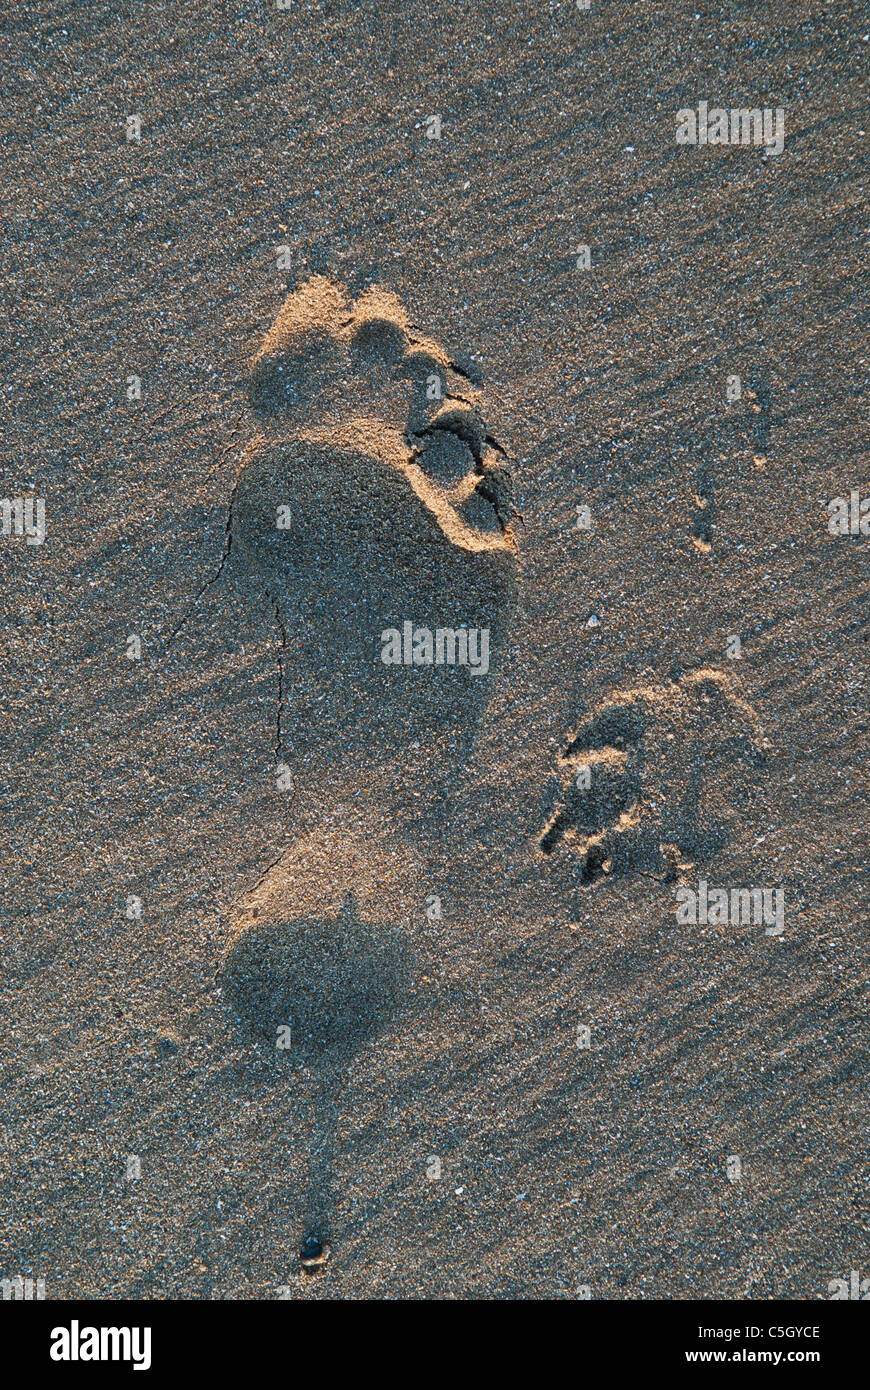 ae84a90666af Human And Dog Prints In Sand Stock Photos & Human And Dog Prints In ...